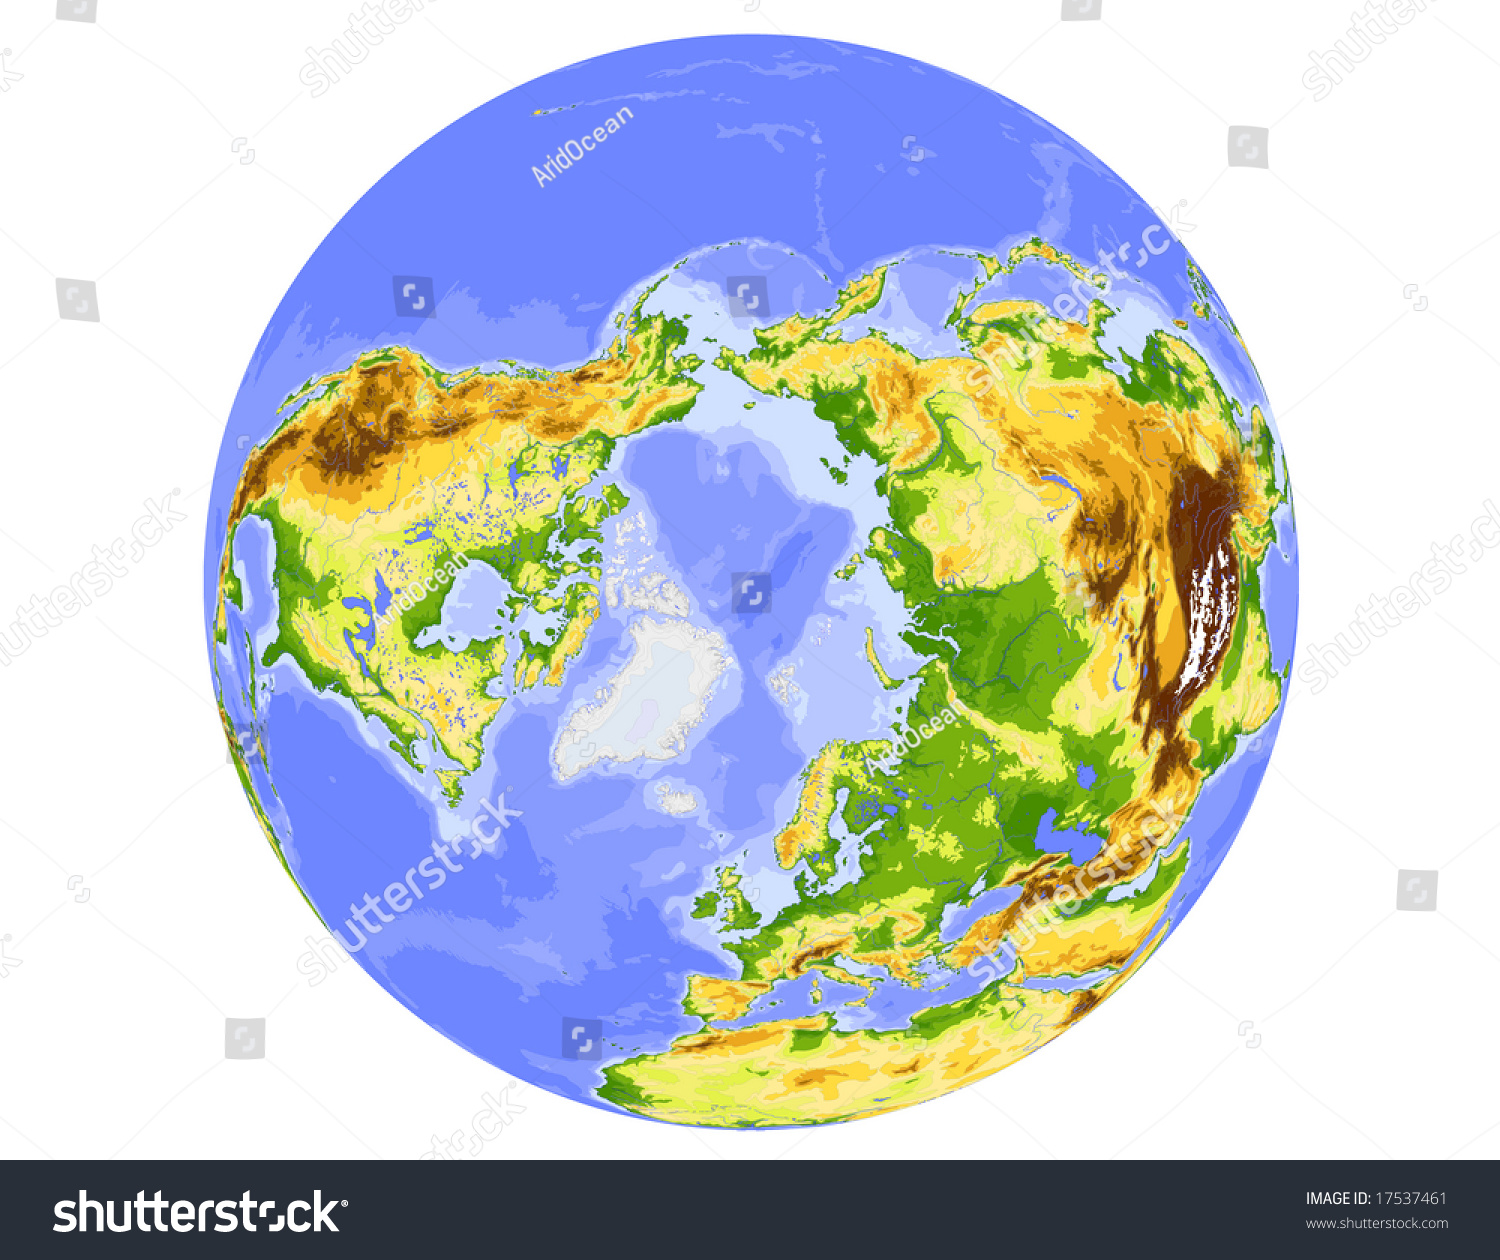 World physical vector map centered on stock photo photo vector world physical vector map centered on the north pole colored according to elevation gumiabroncs Choice Image